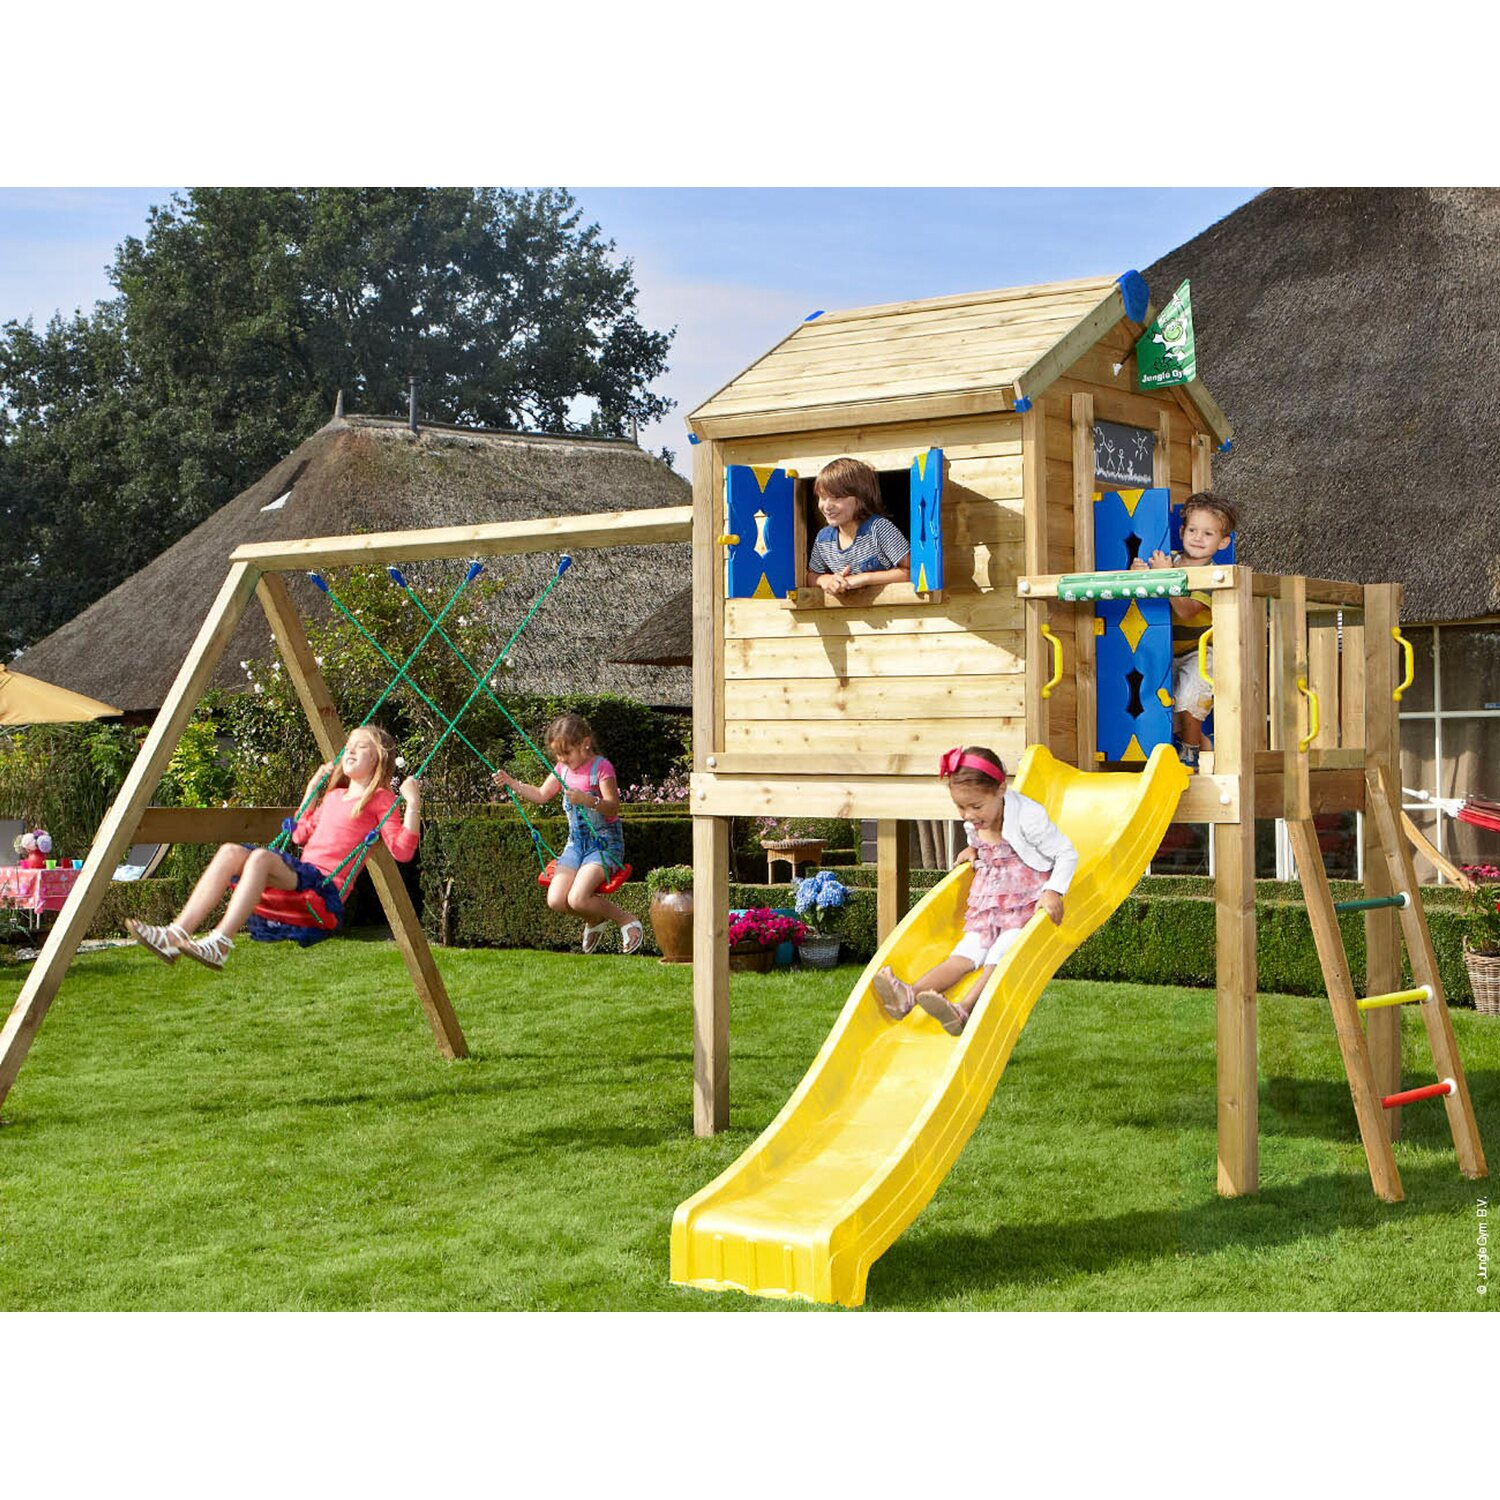 jungle gym spielhaus l 2 schaukel mit rutsche gelb kaufen. Black Bedroom Furniture Sets. Home Design Ideas